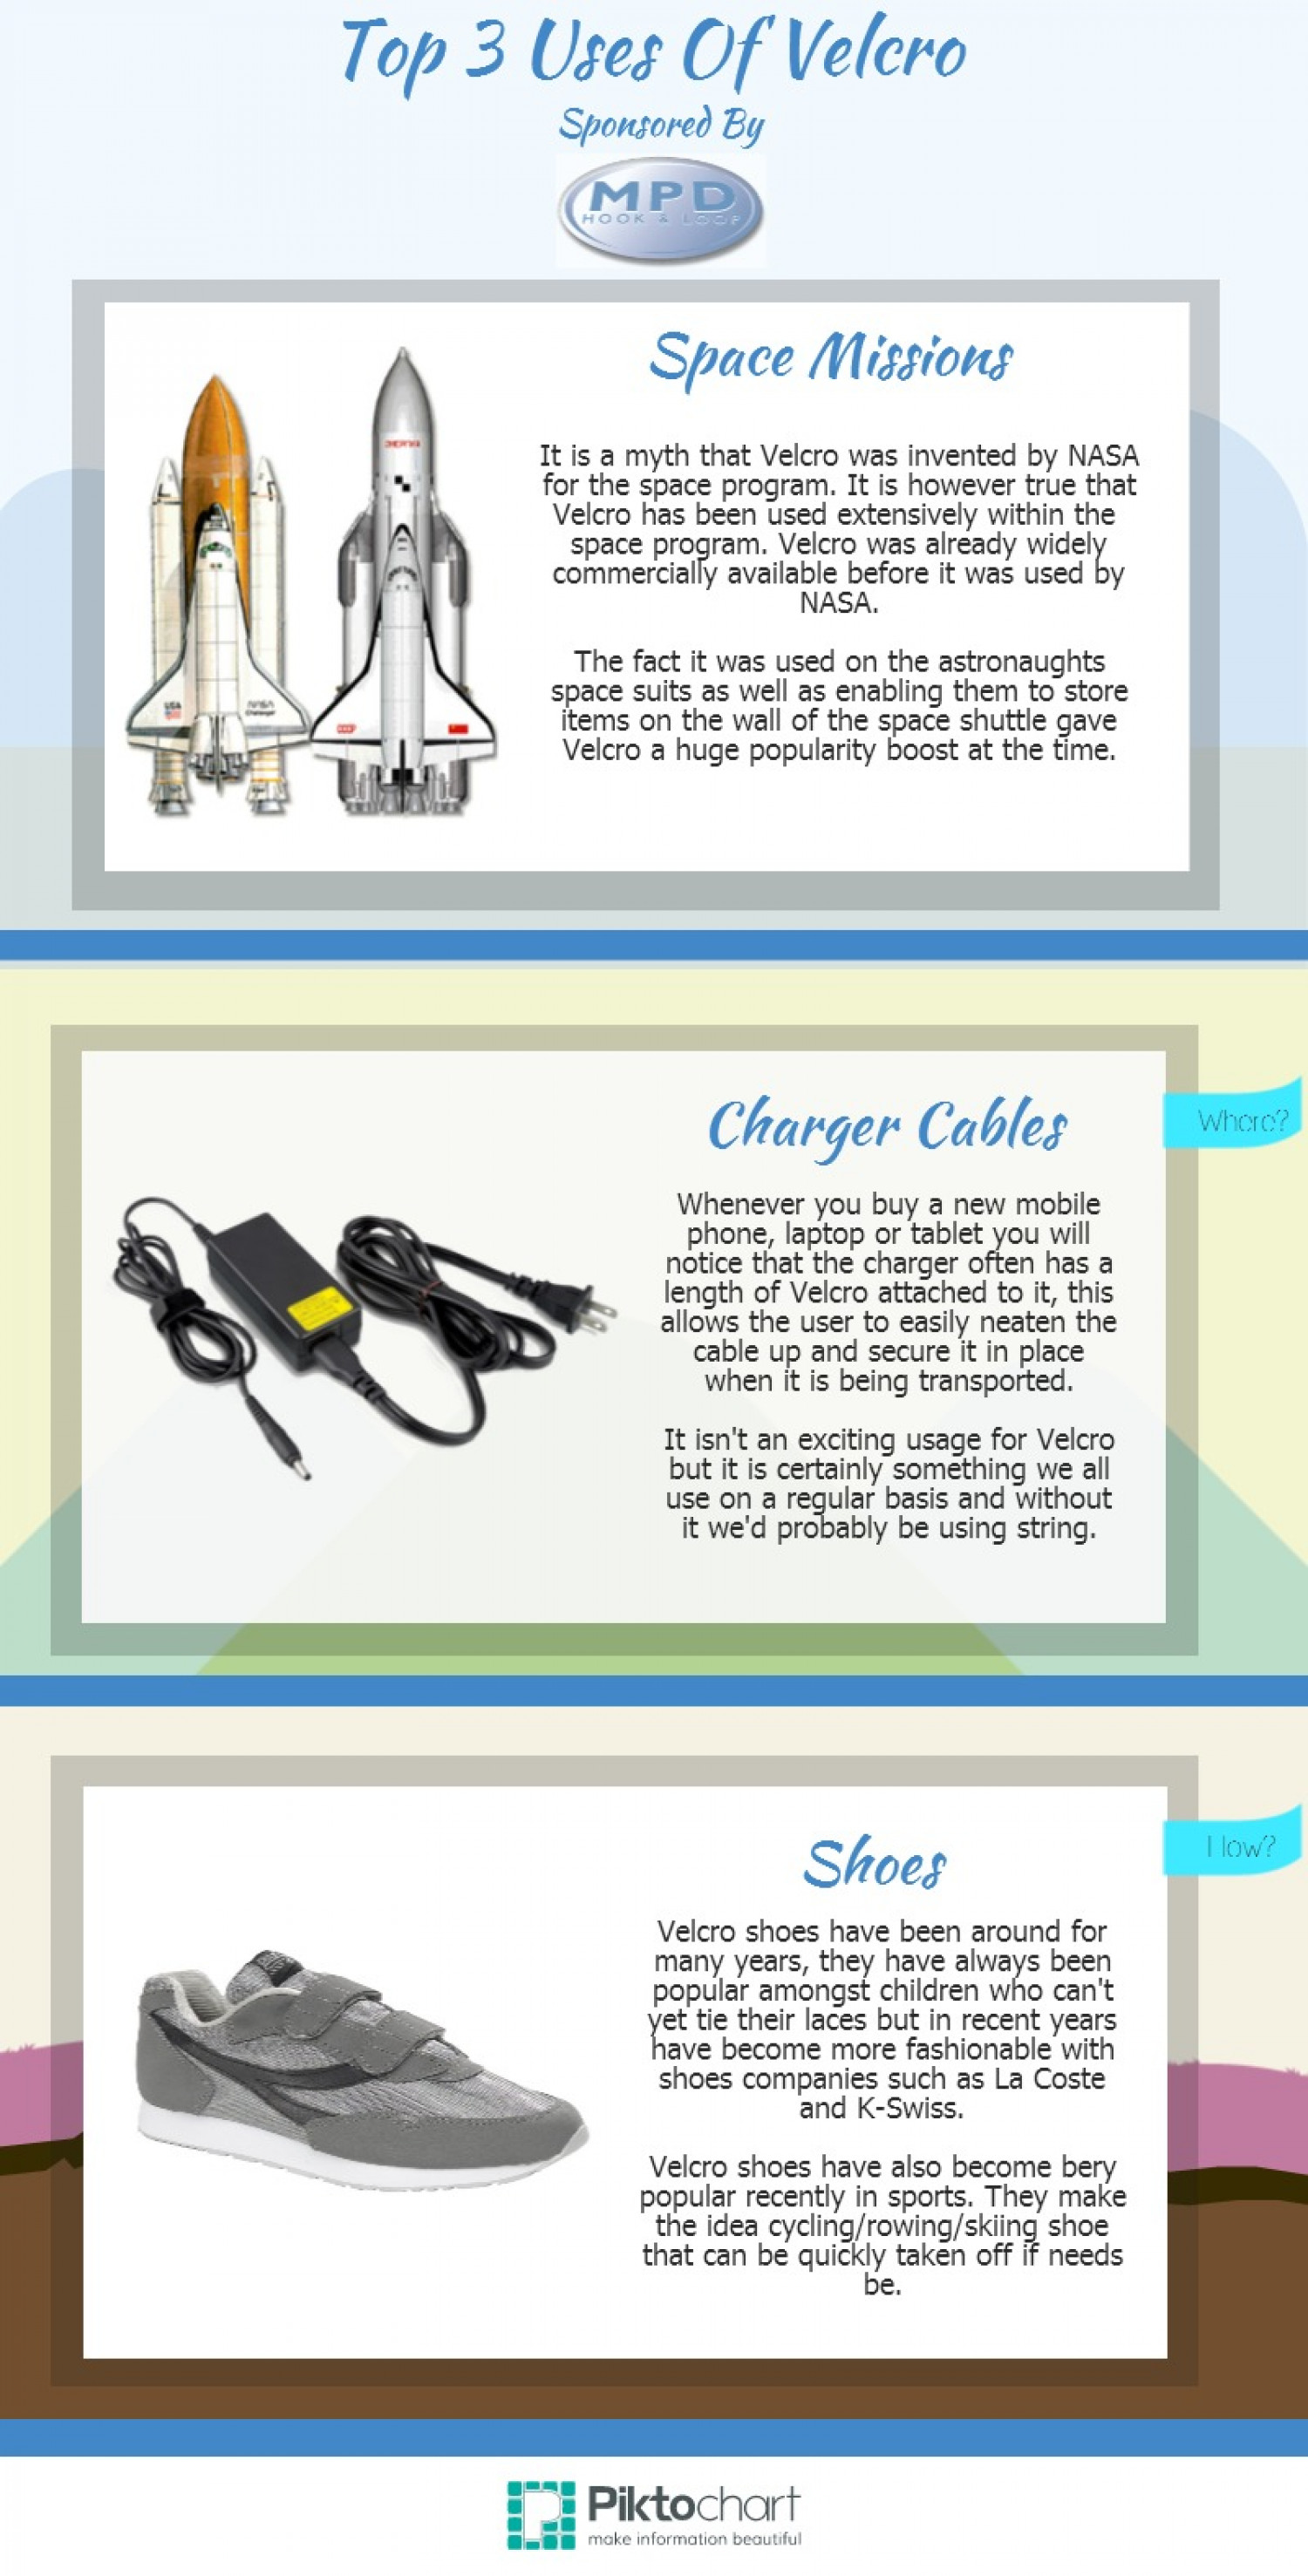 Top 3 Uses Of Velcro Infographic